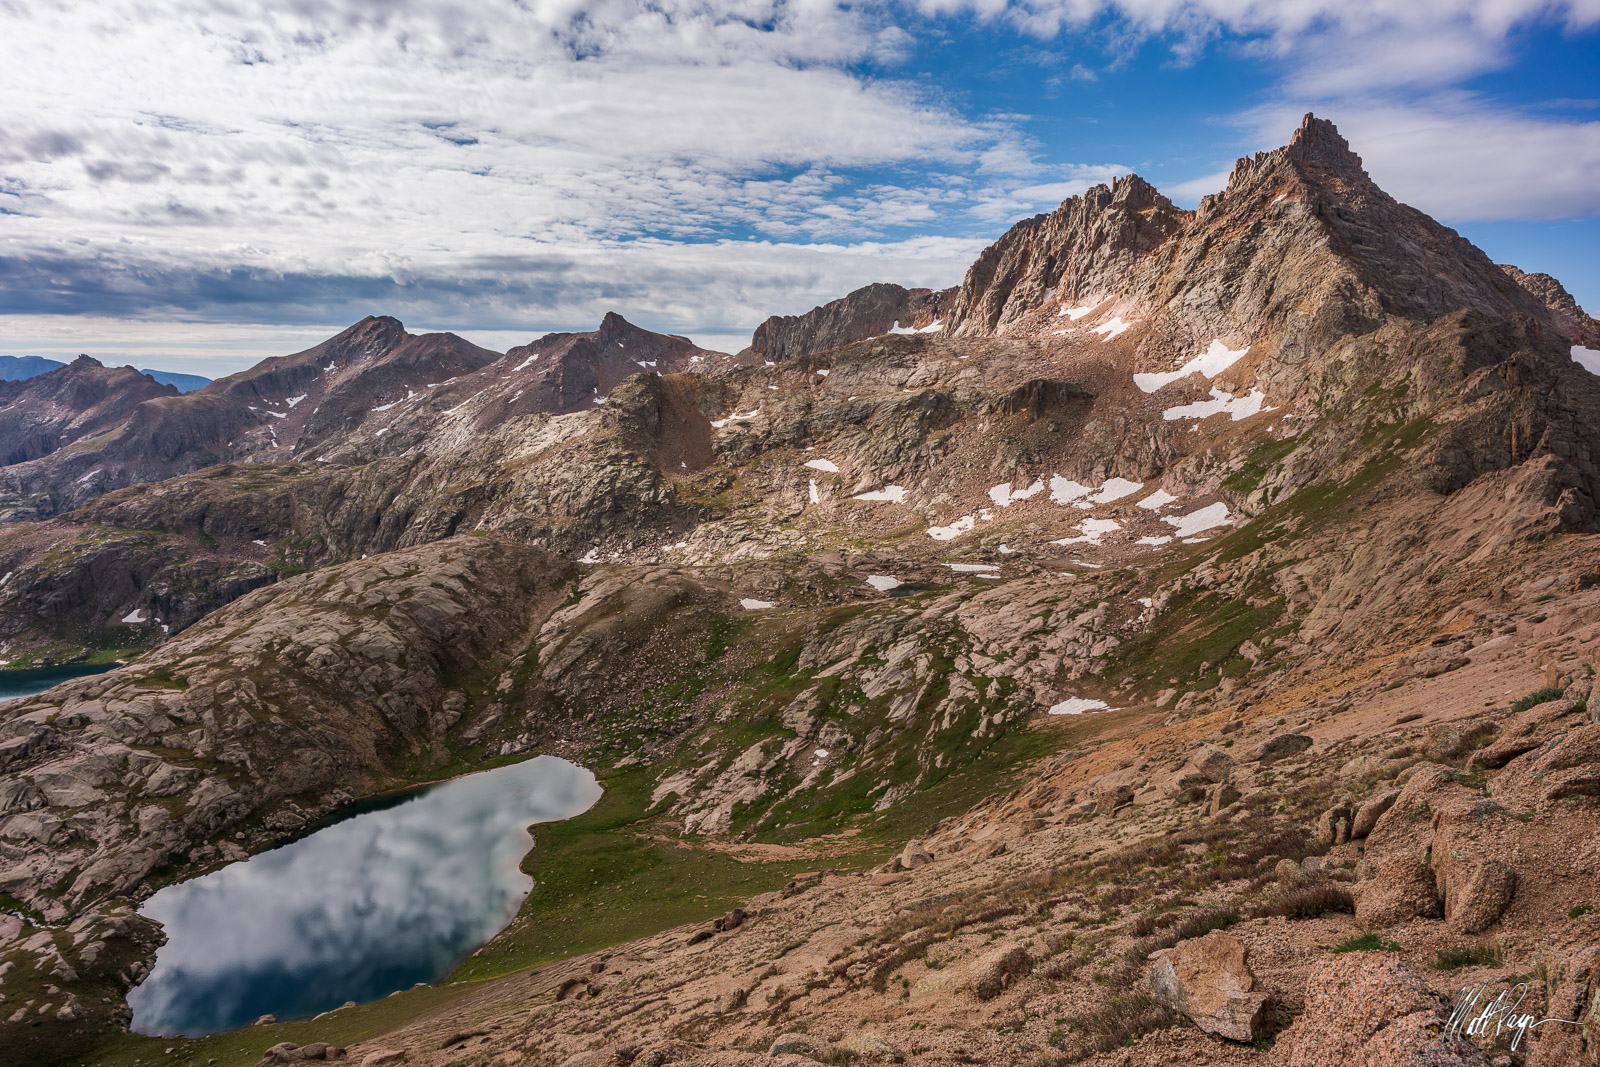 SOLD OUT.14er Sunlight Peak towers above all else as seen near the summit of 13er Knife Point deep in the Weminuche Wilderness...